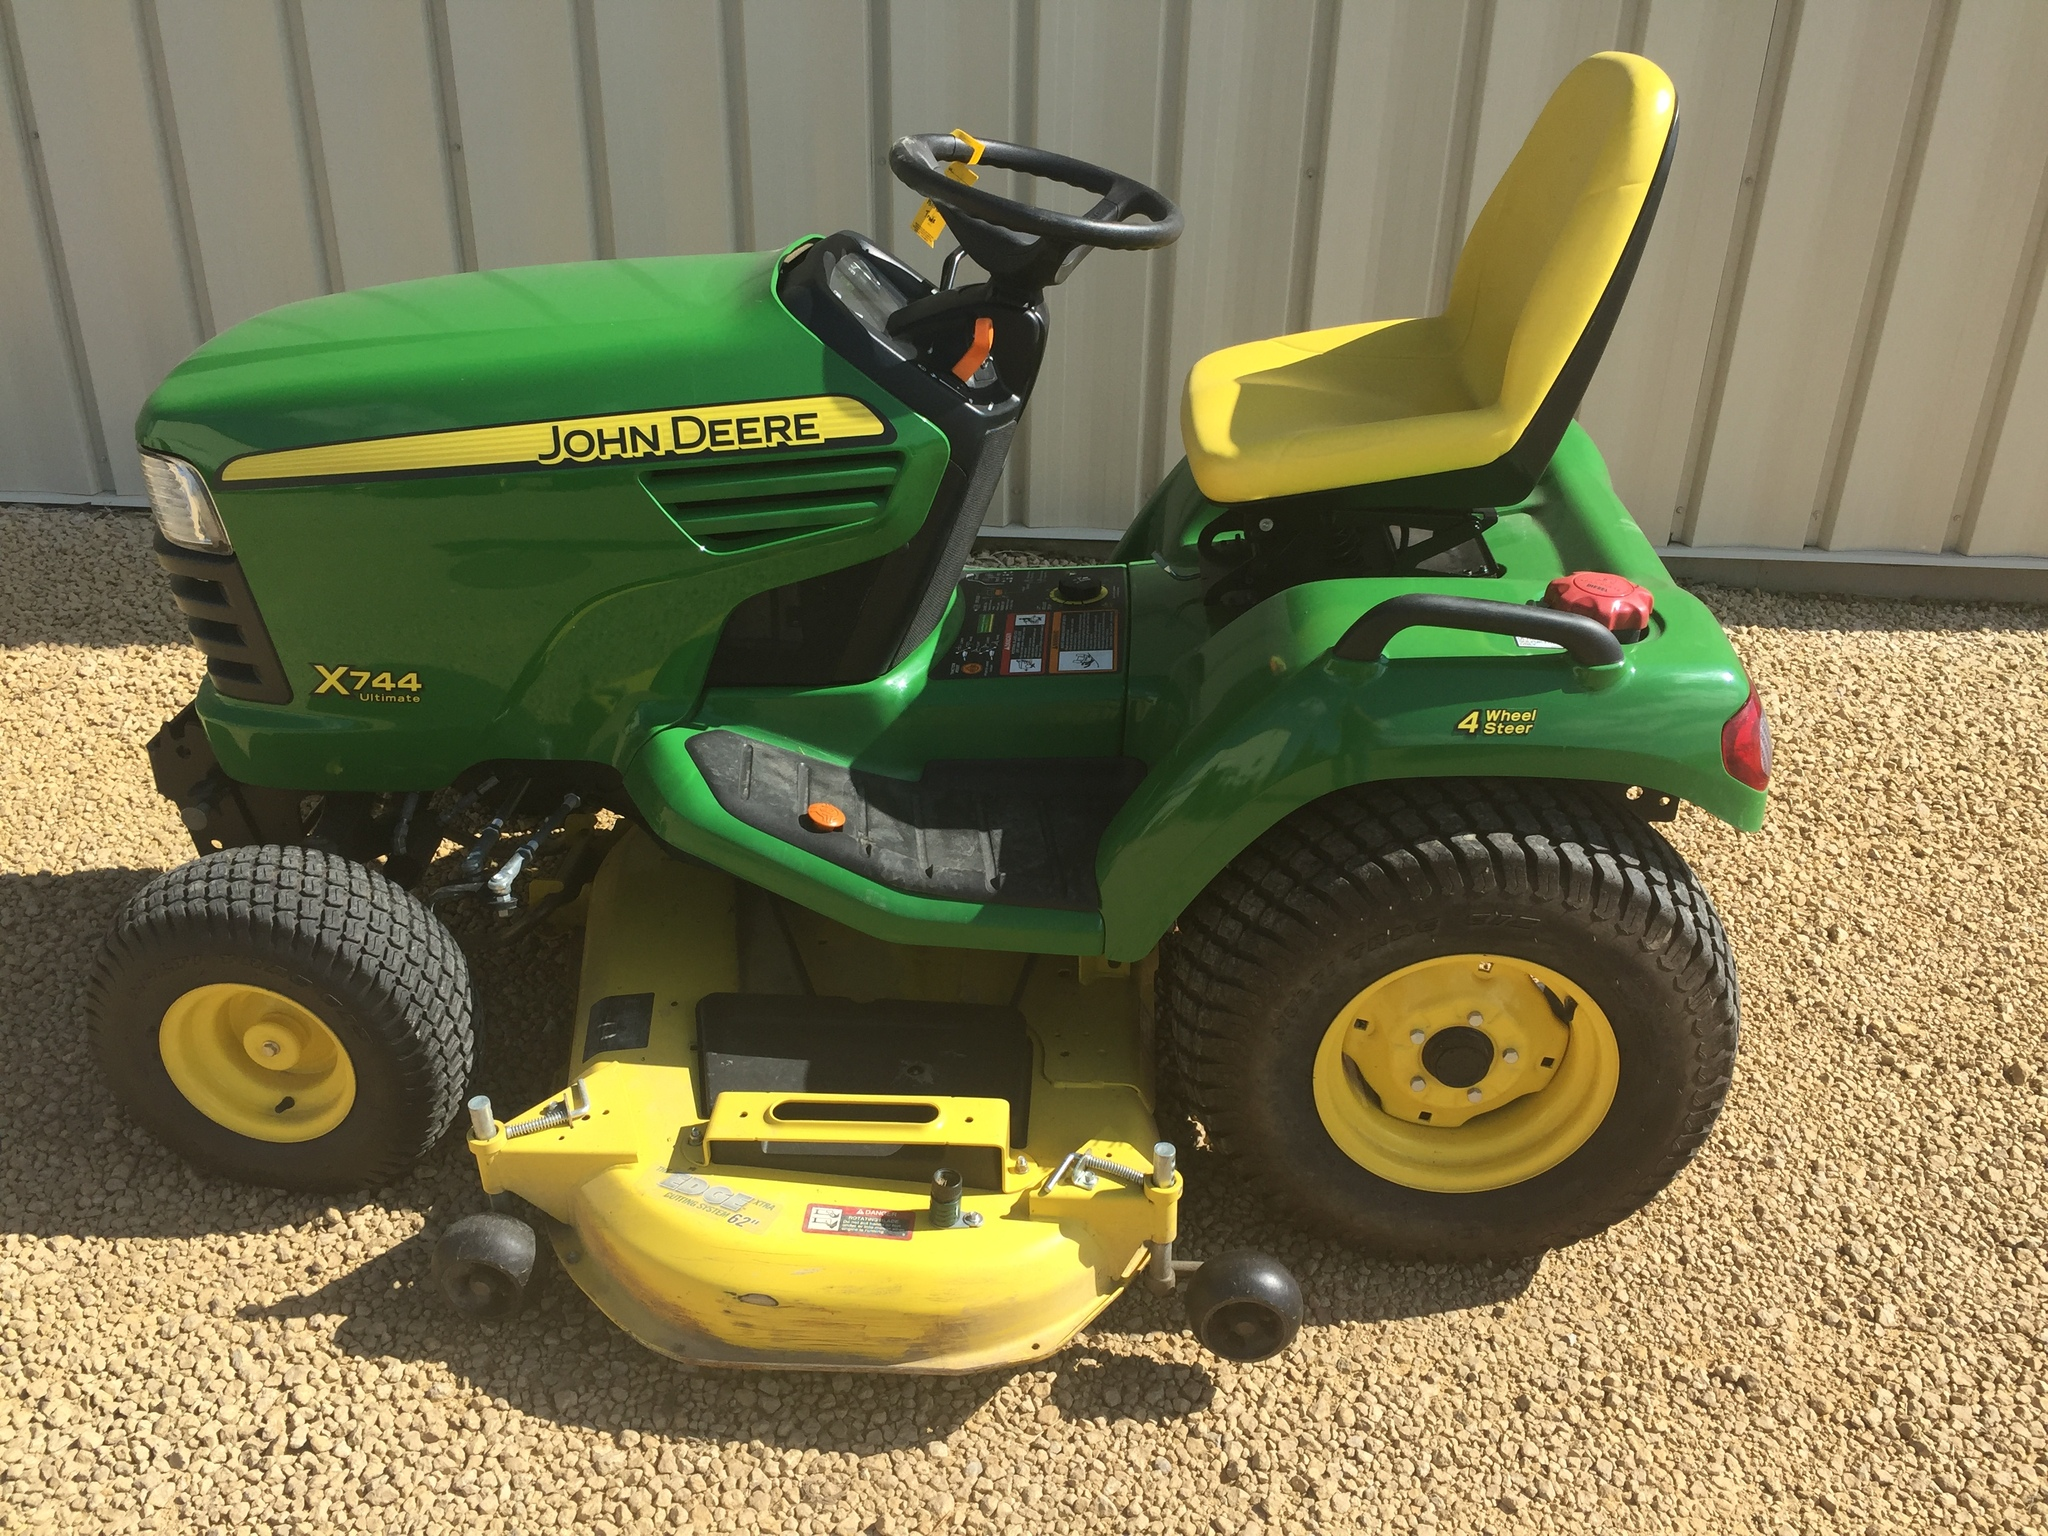 John deere x744 lawn garden tractors for sale 59731 for Garden machinery for sale